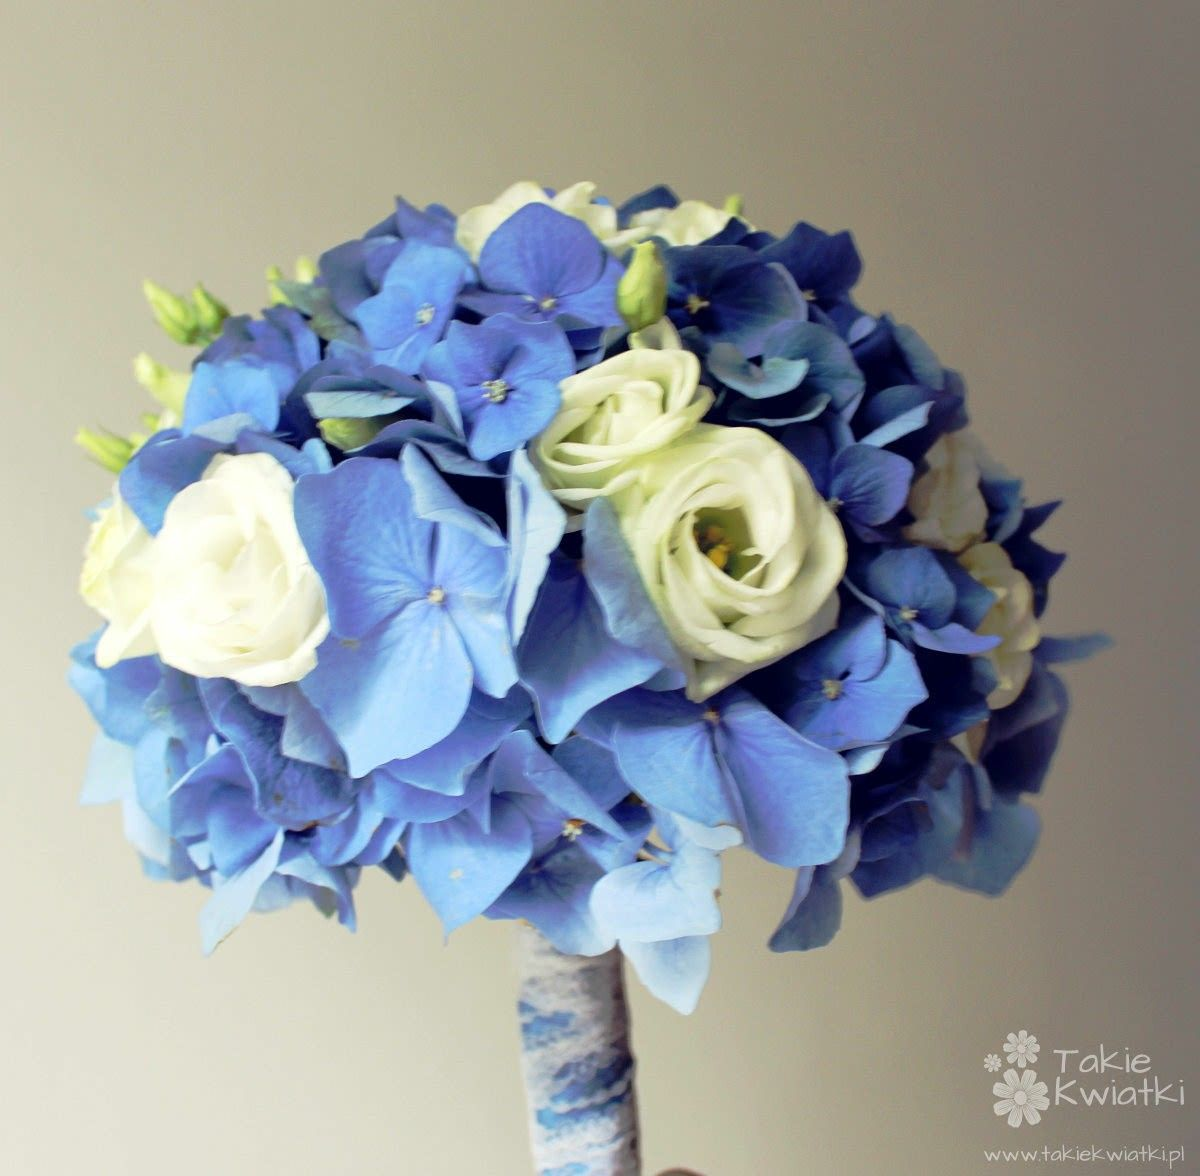 Blue hydrangea white lisianthus white spray roses for Flower sprays for weddings